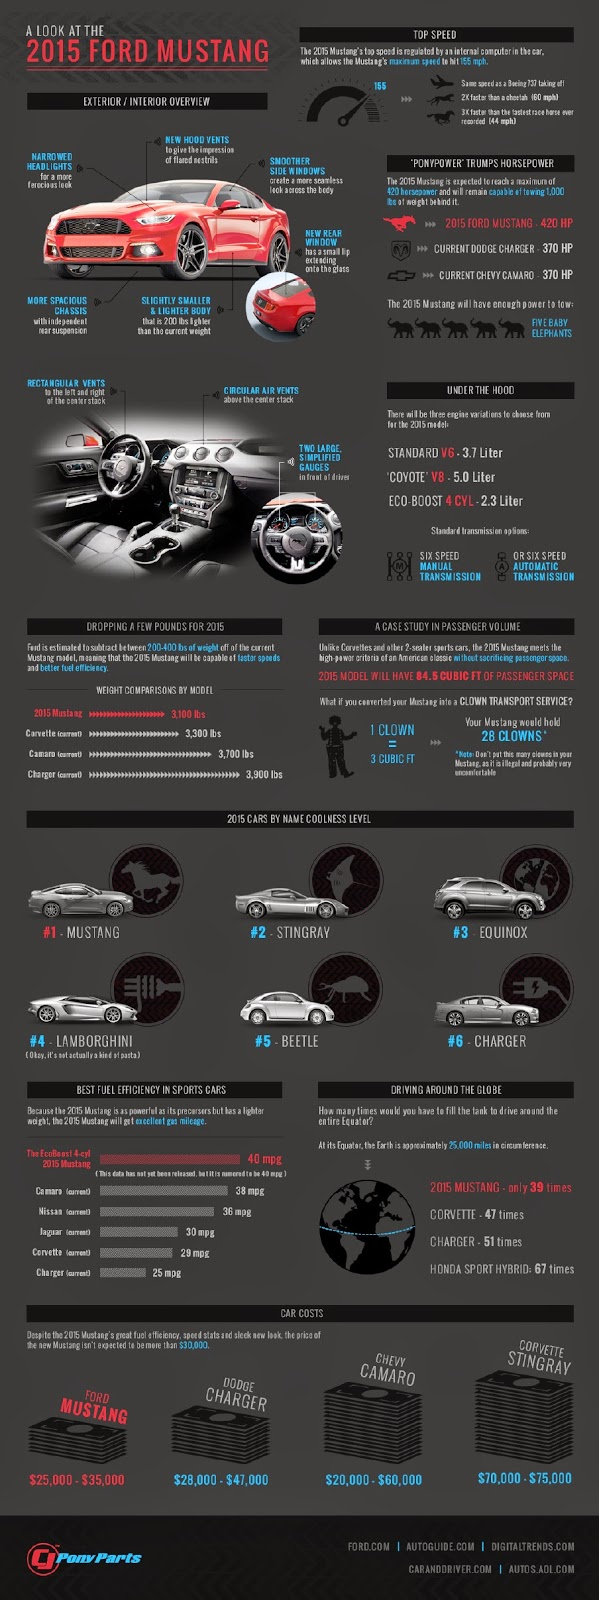 2015 Ford Mustang: By the numbers